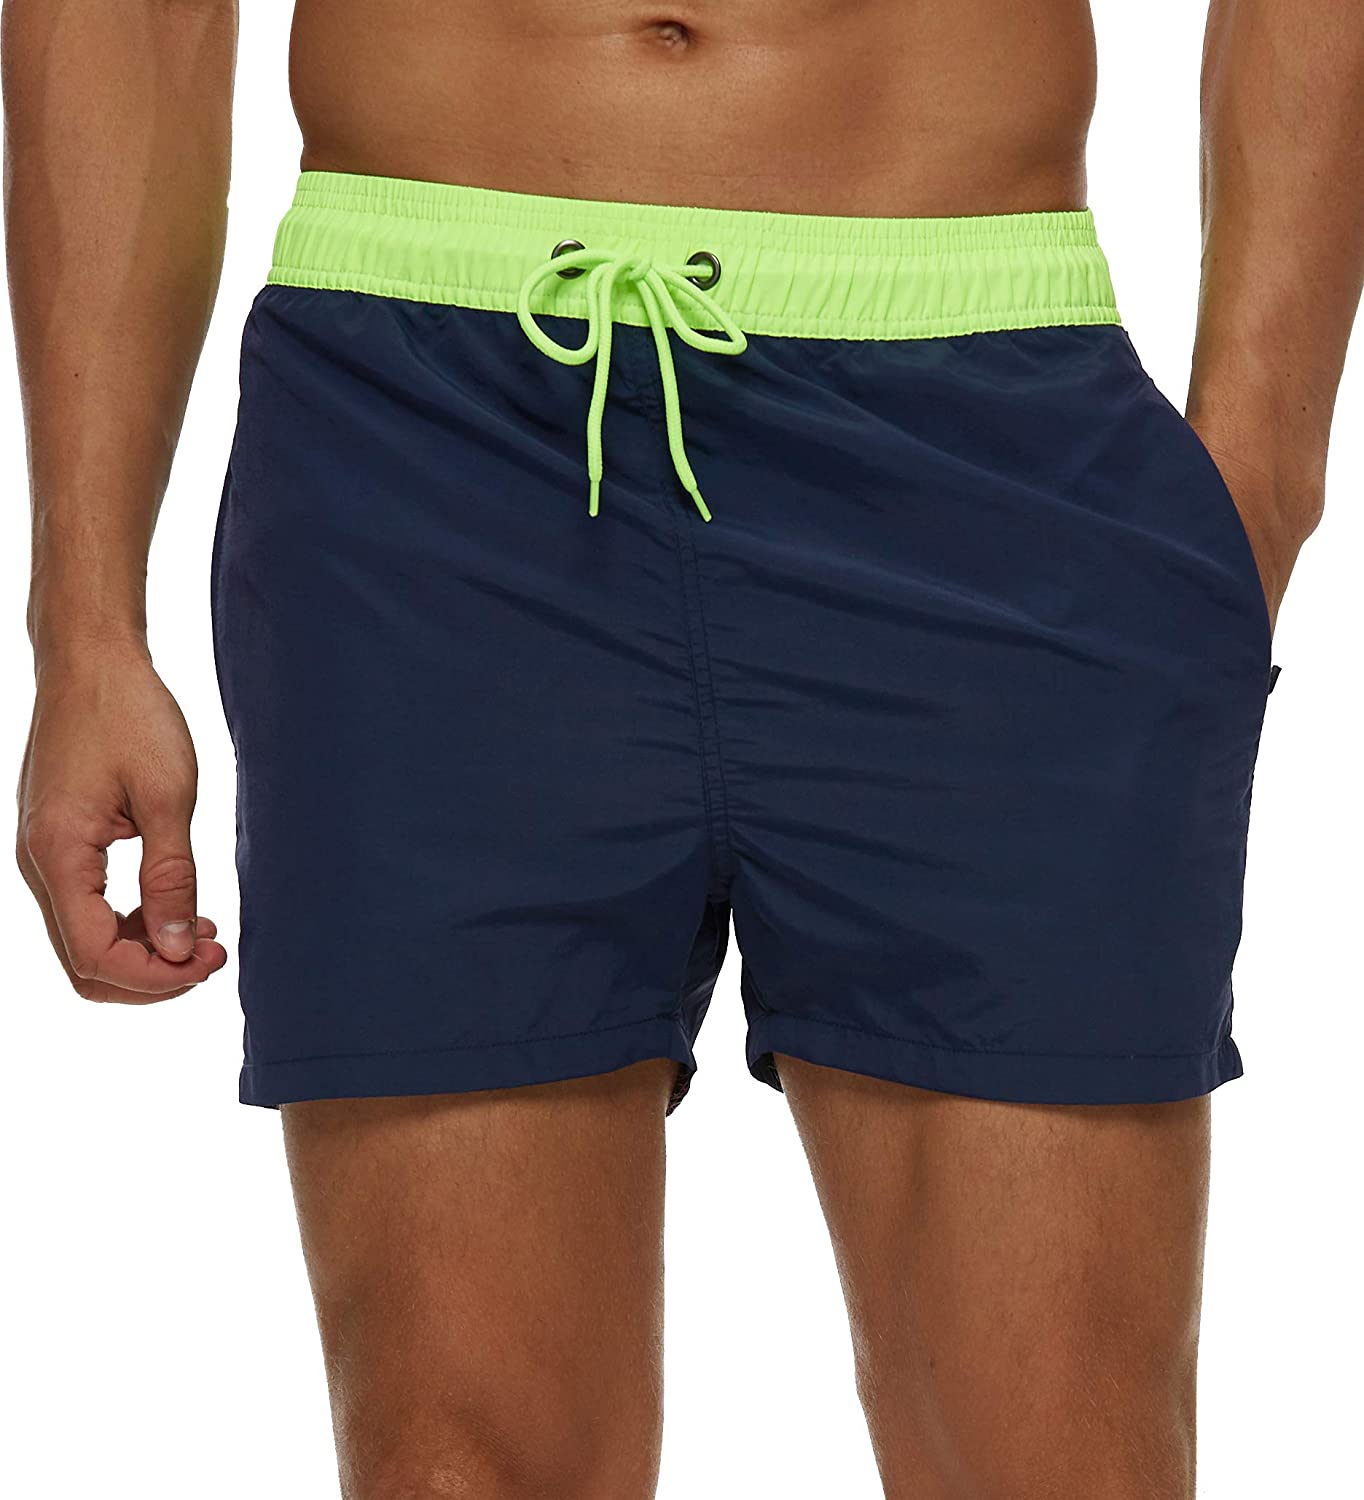 SILKWORLD Men's Slim Swim Shorts with Zipper Pockets Quick Dry Swimsuit Sports Swim Trunks